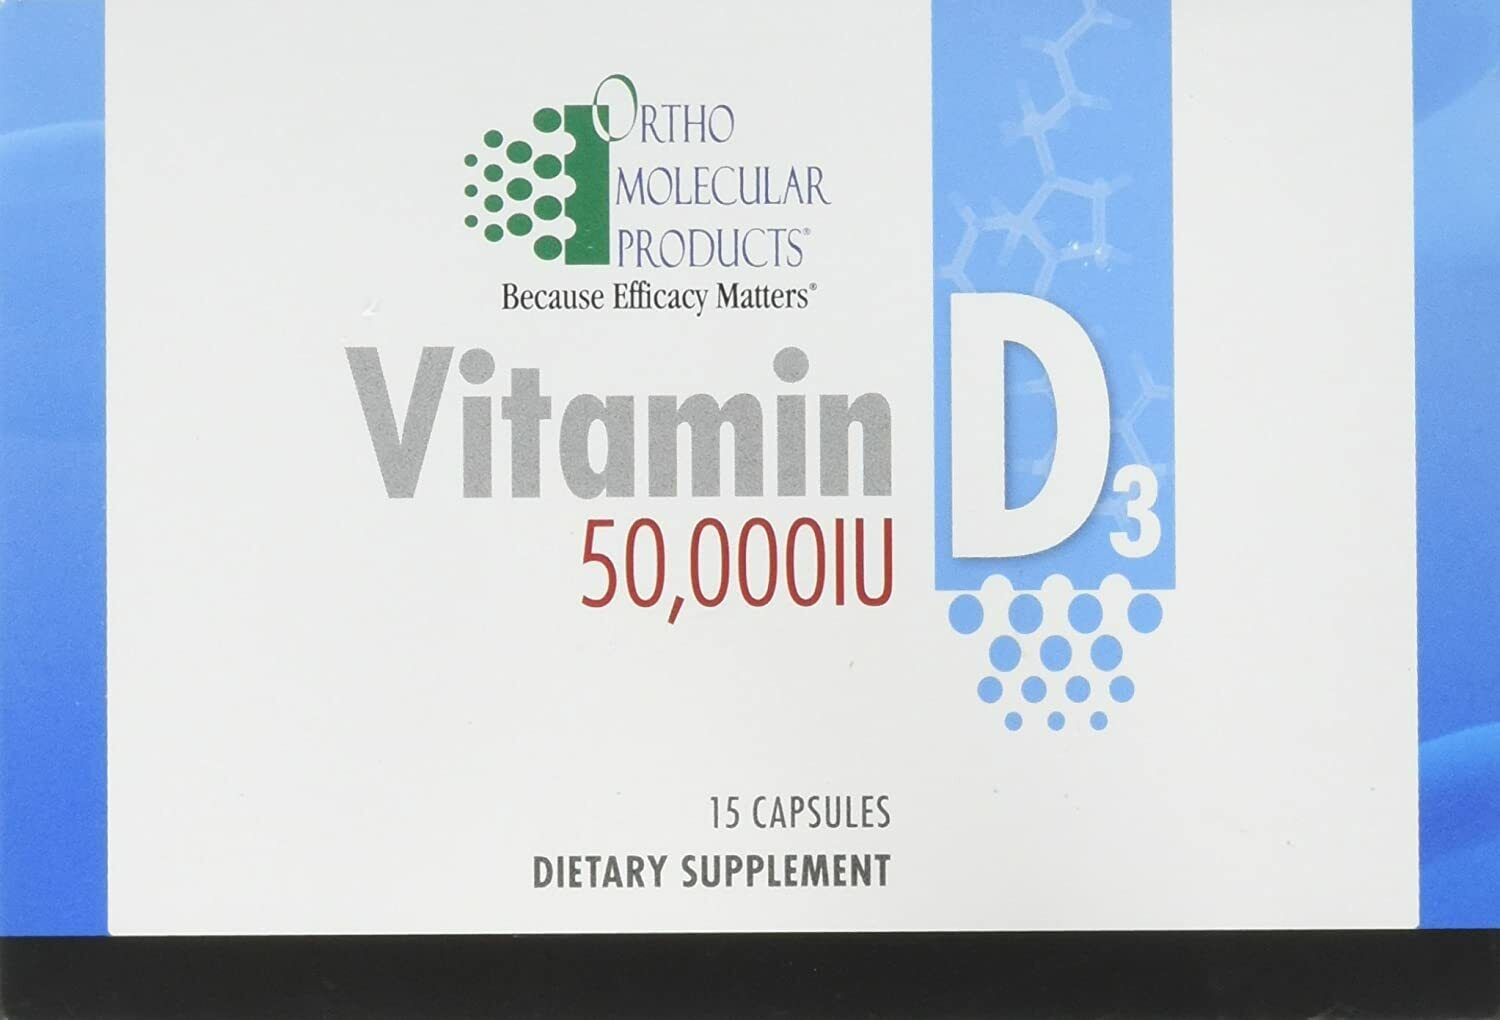 Ortho Molecular - Vitamin D3 50,000 IU - 15 Caps Blister Pack. Ships in 24 hours